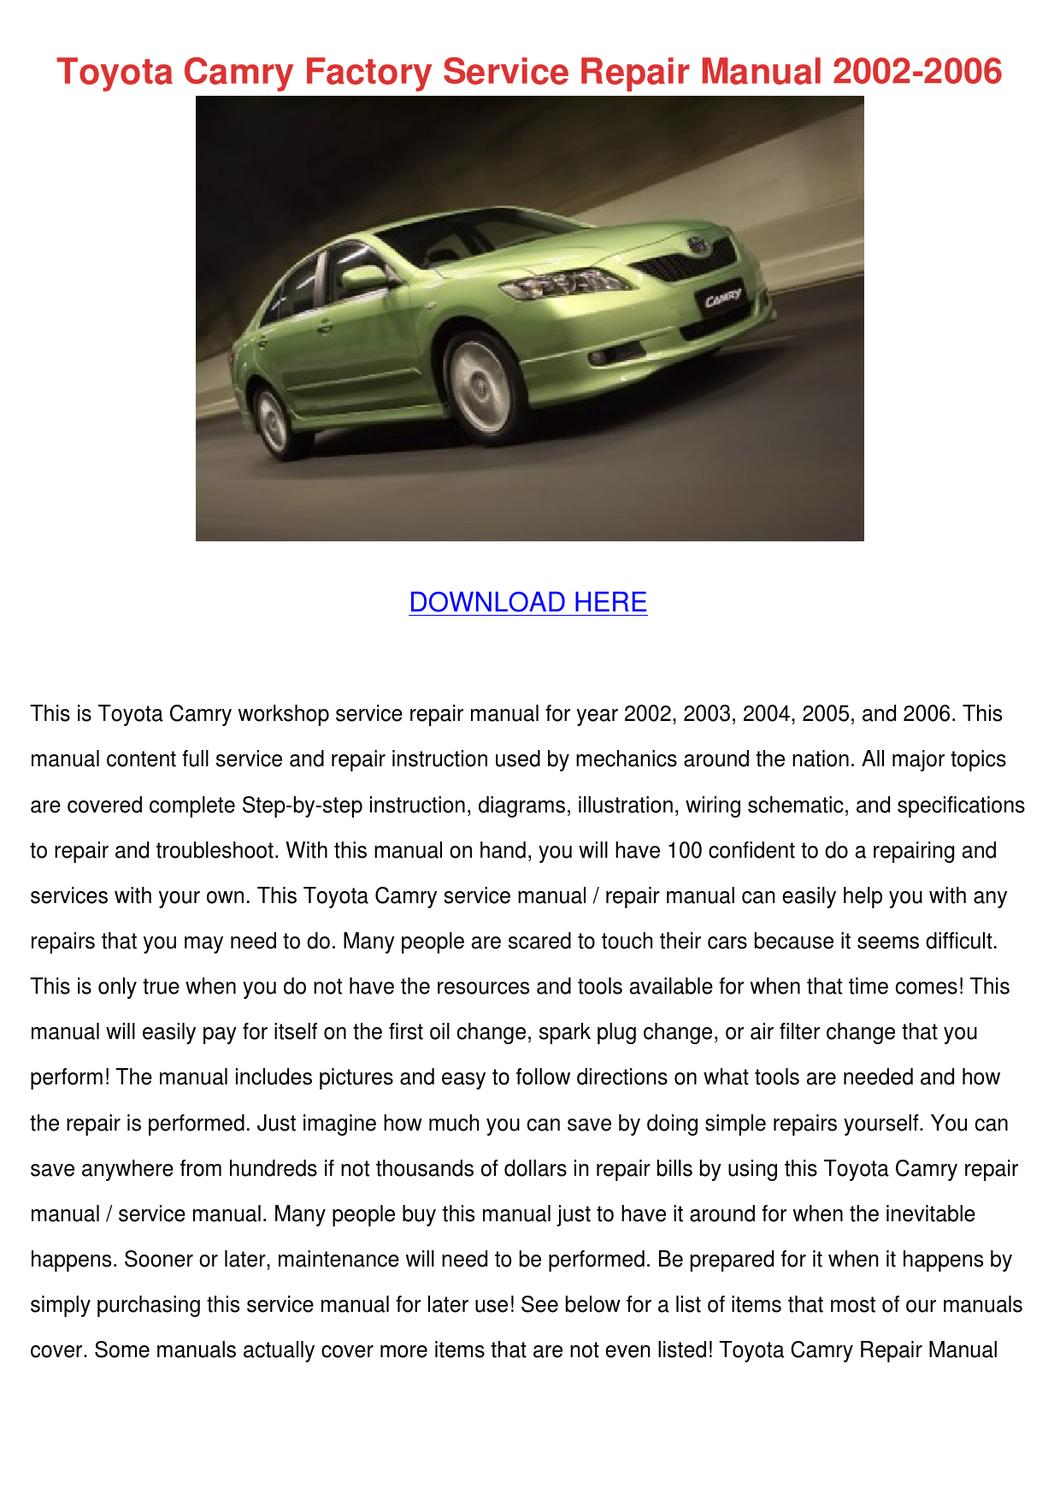 2012 toyota camry repair manual pdf